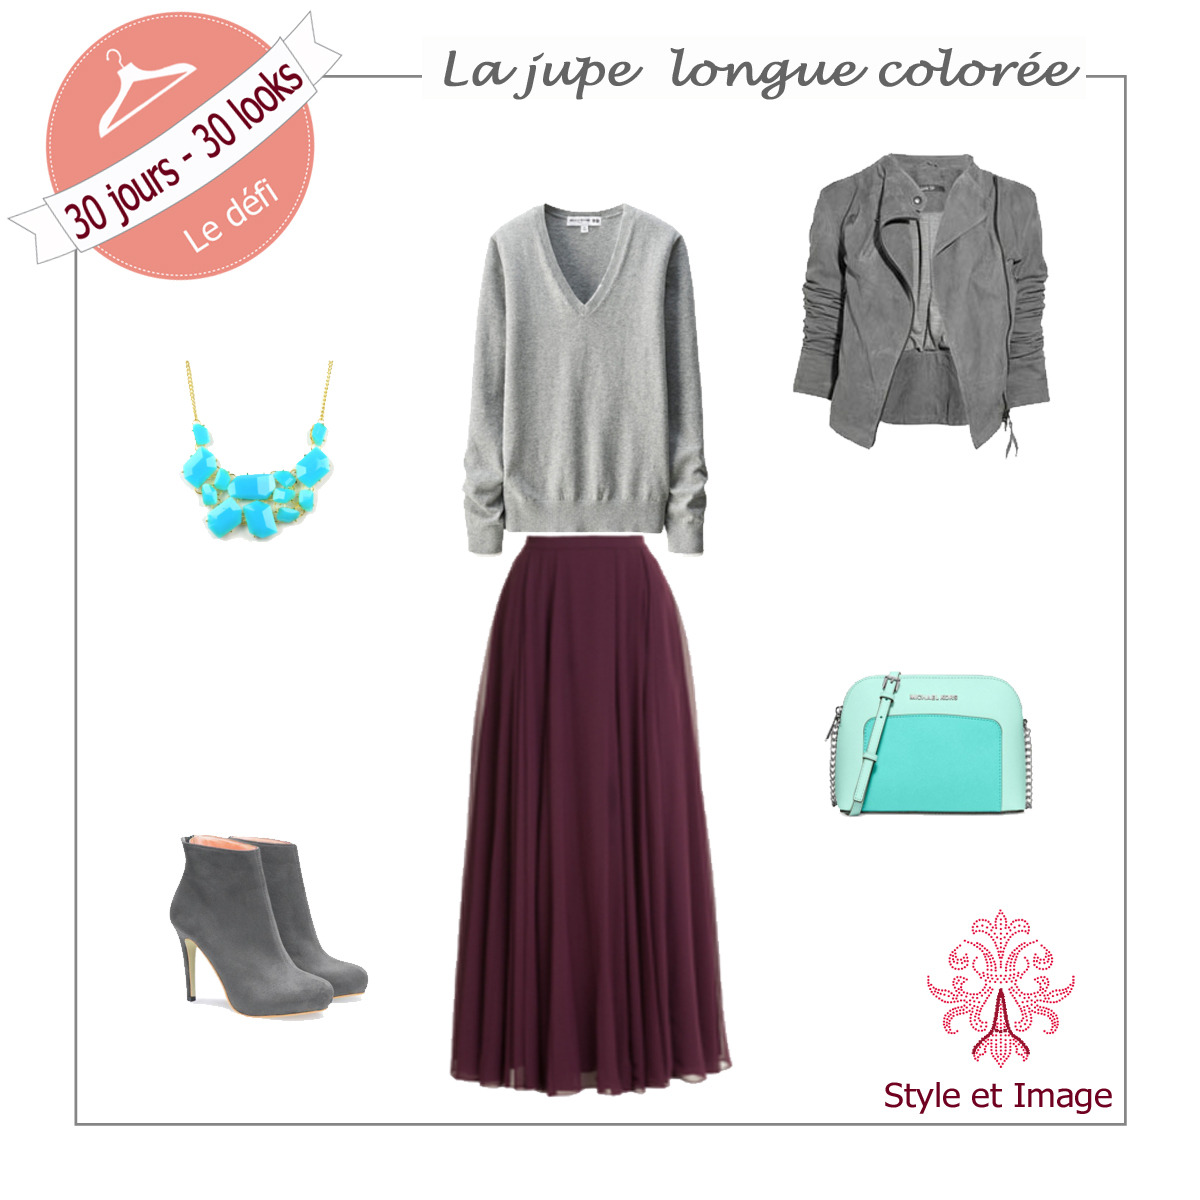 jupe-longue-coloree